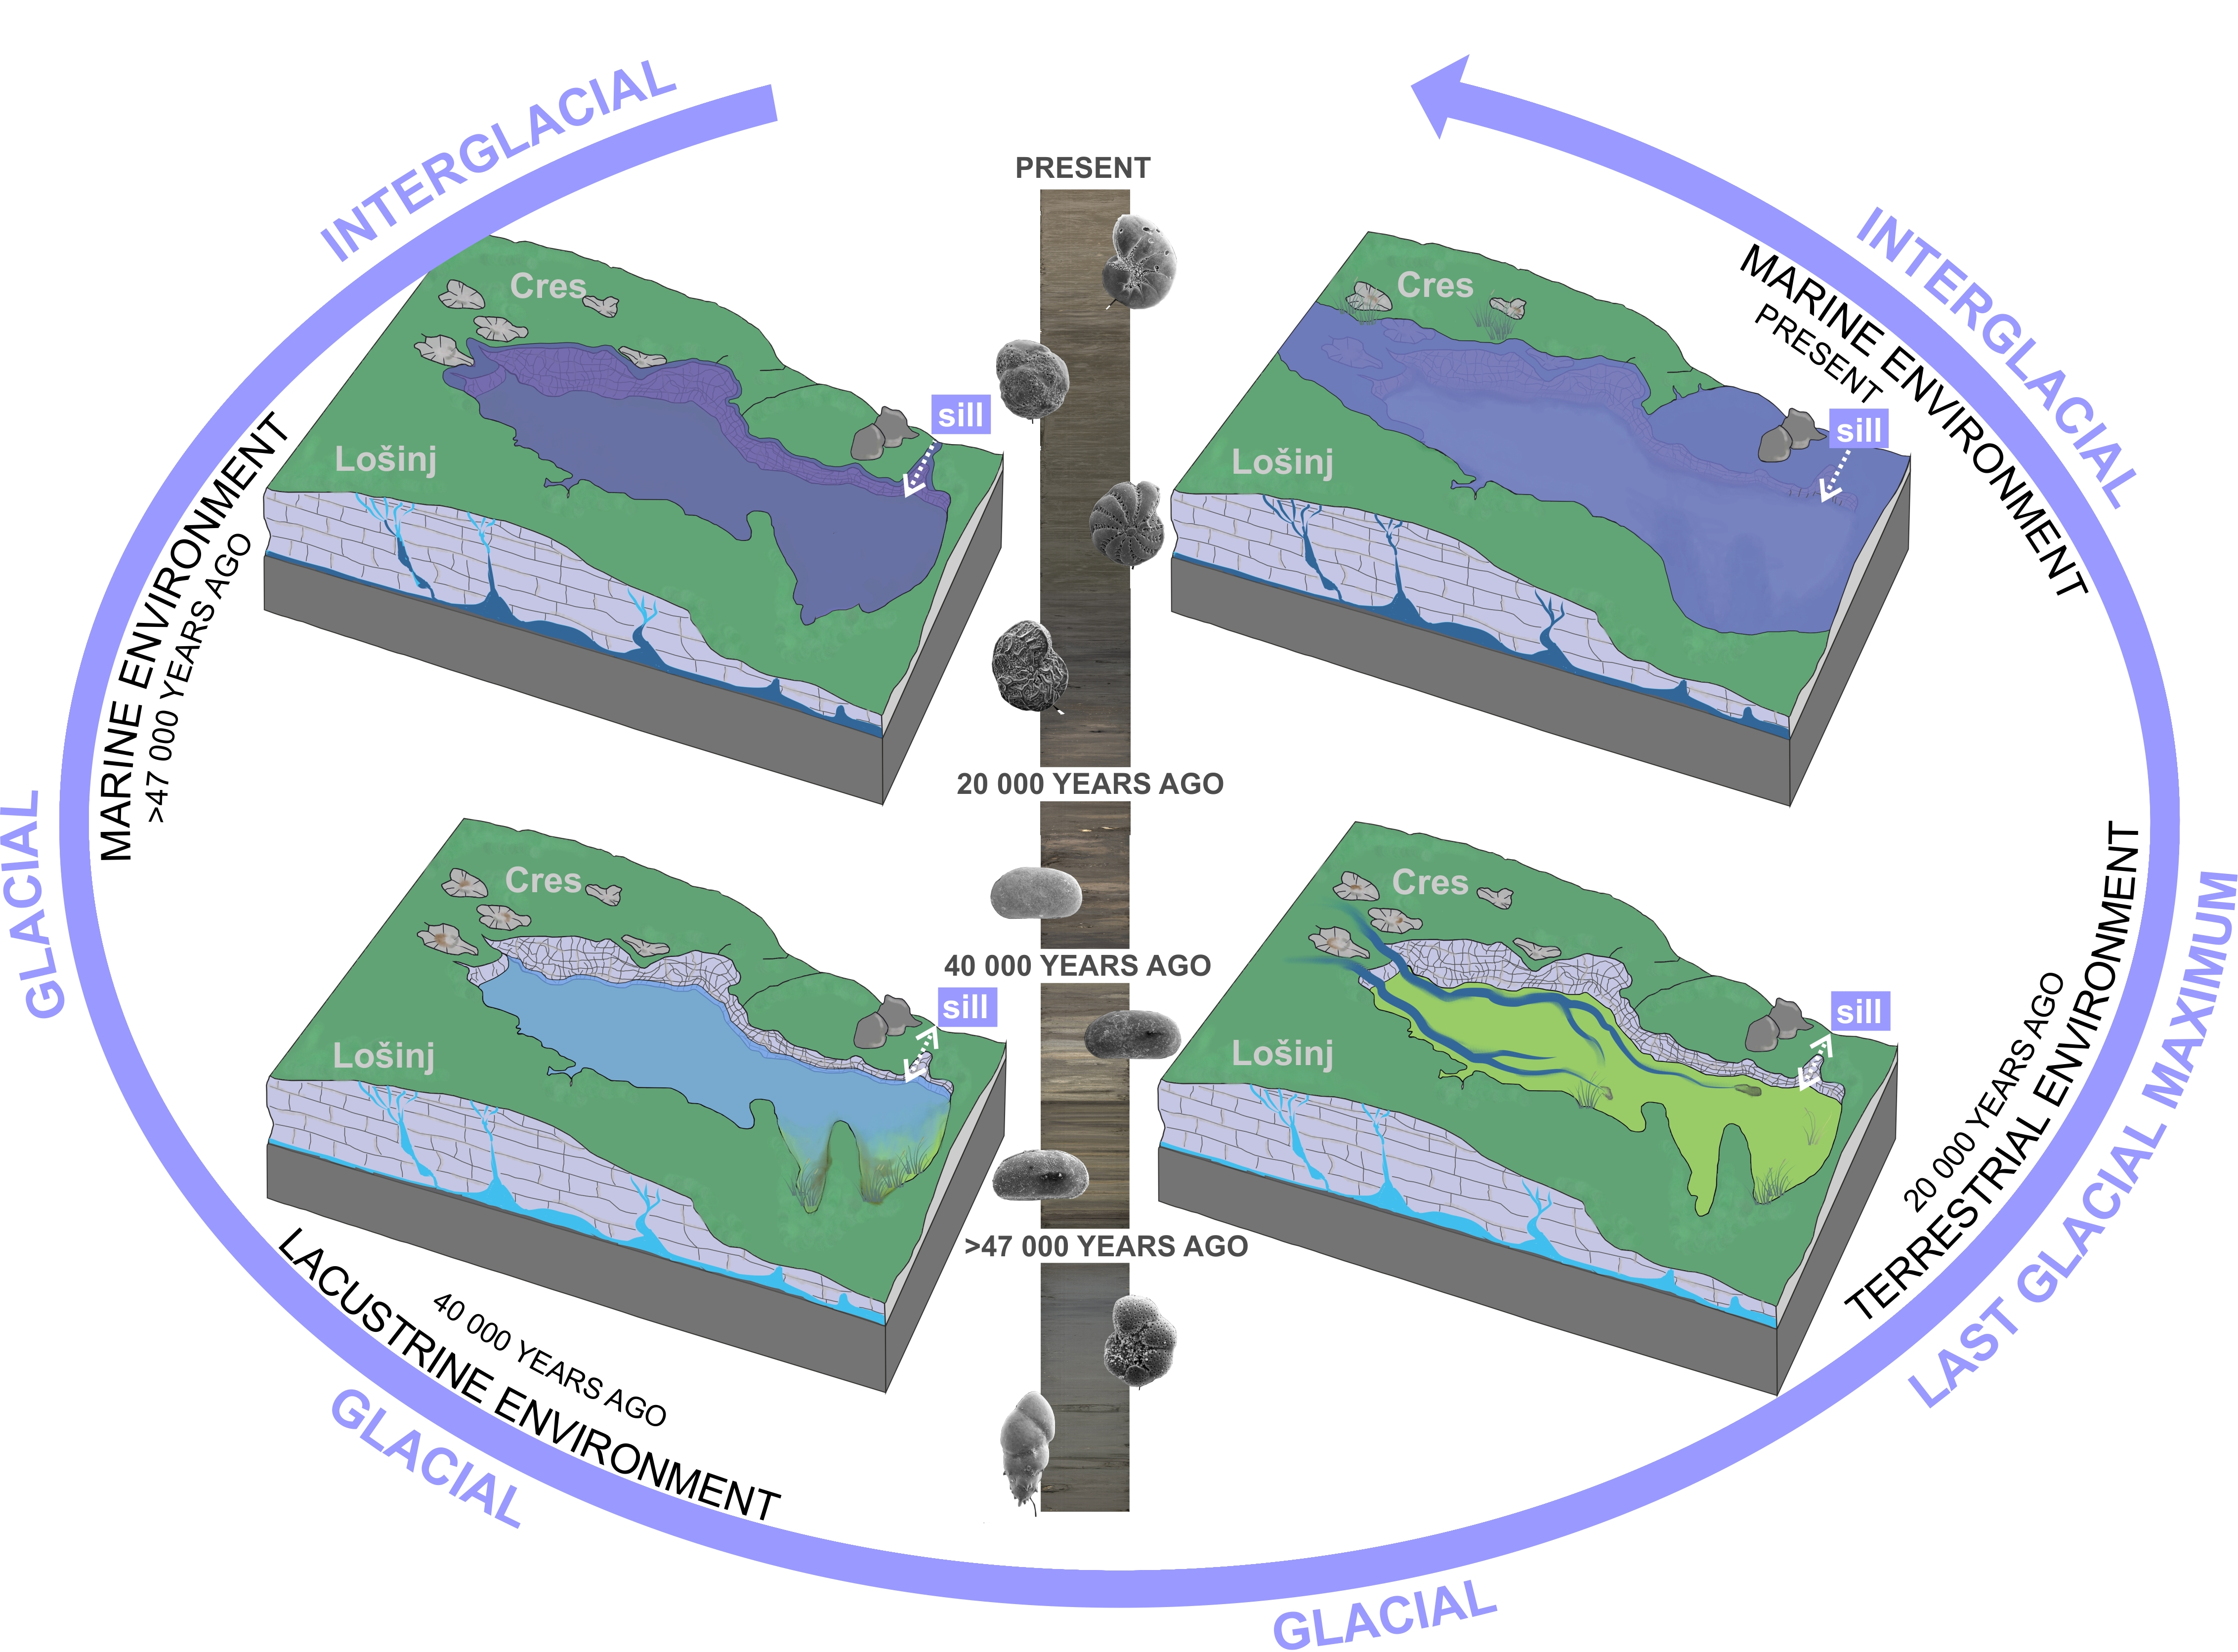 palaeoenvironmental changes in Lošinj Channel, Adriatic Sea